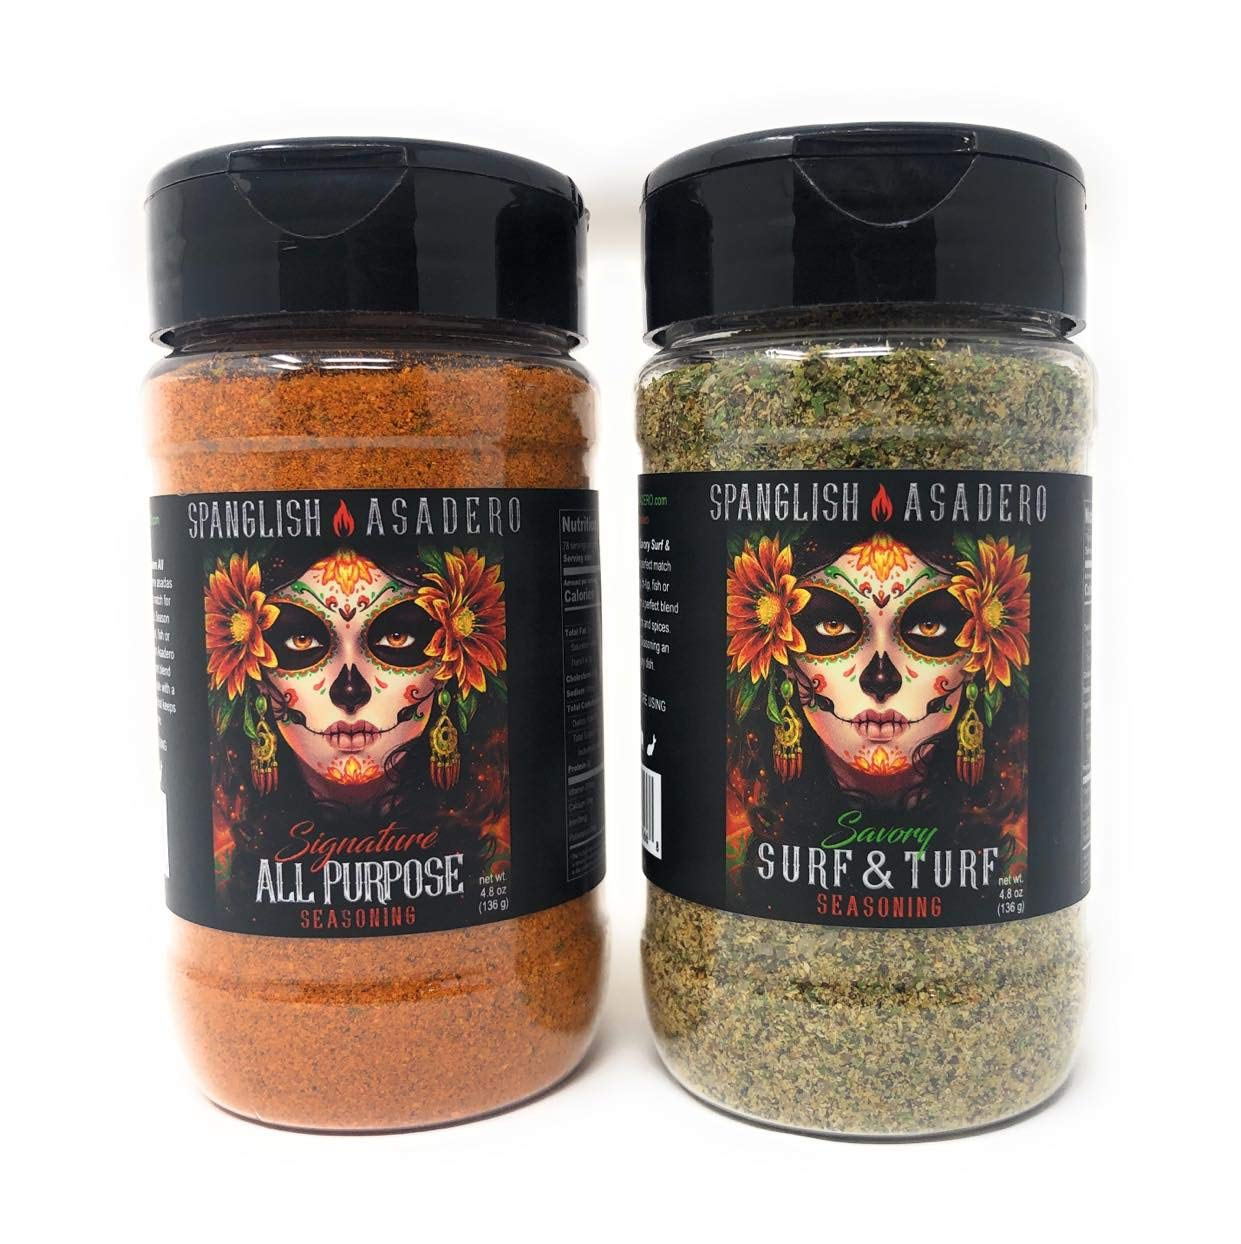 Spanglish Asadero Seasoning Mexican BBQ Rub | Savory Surf & Turf Chile Spice Set for Grilling & Smoking | All Purpose 4.8oz each| Great w/ Steaks Carne Asada Lobster Shrimp Tacos Seafood | 2 Pack Gift